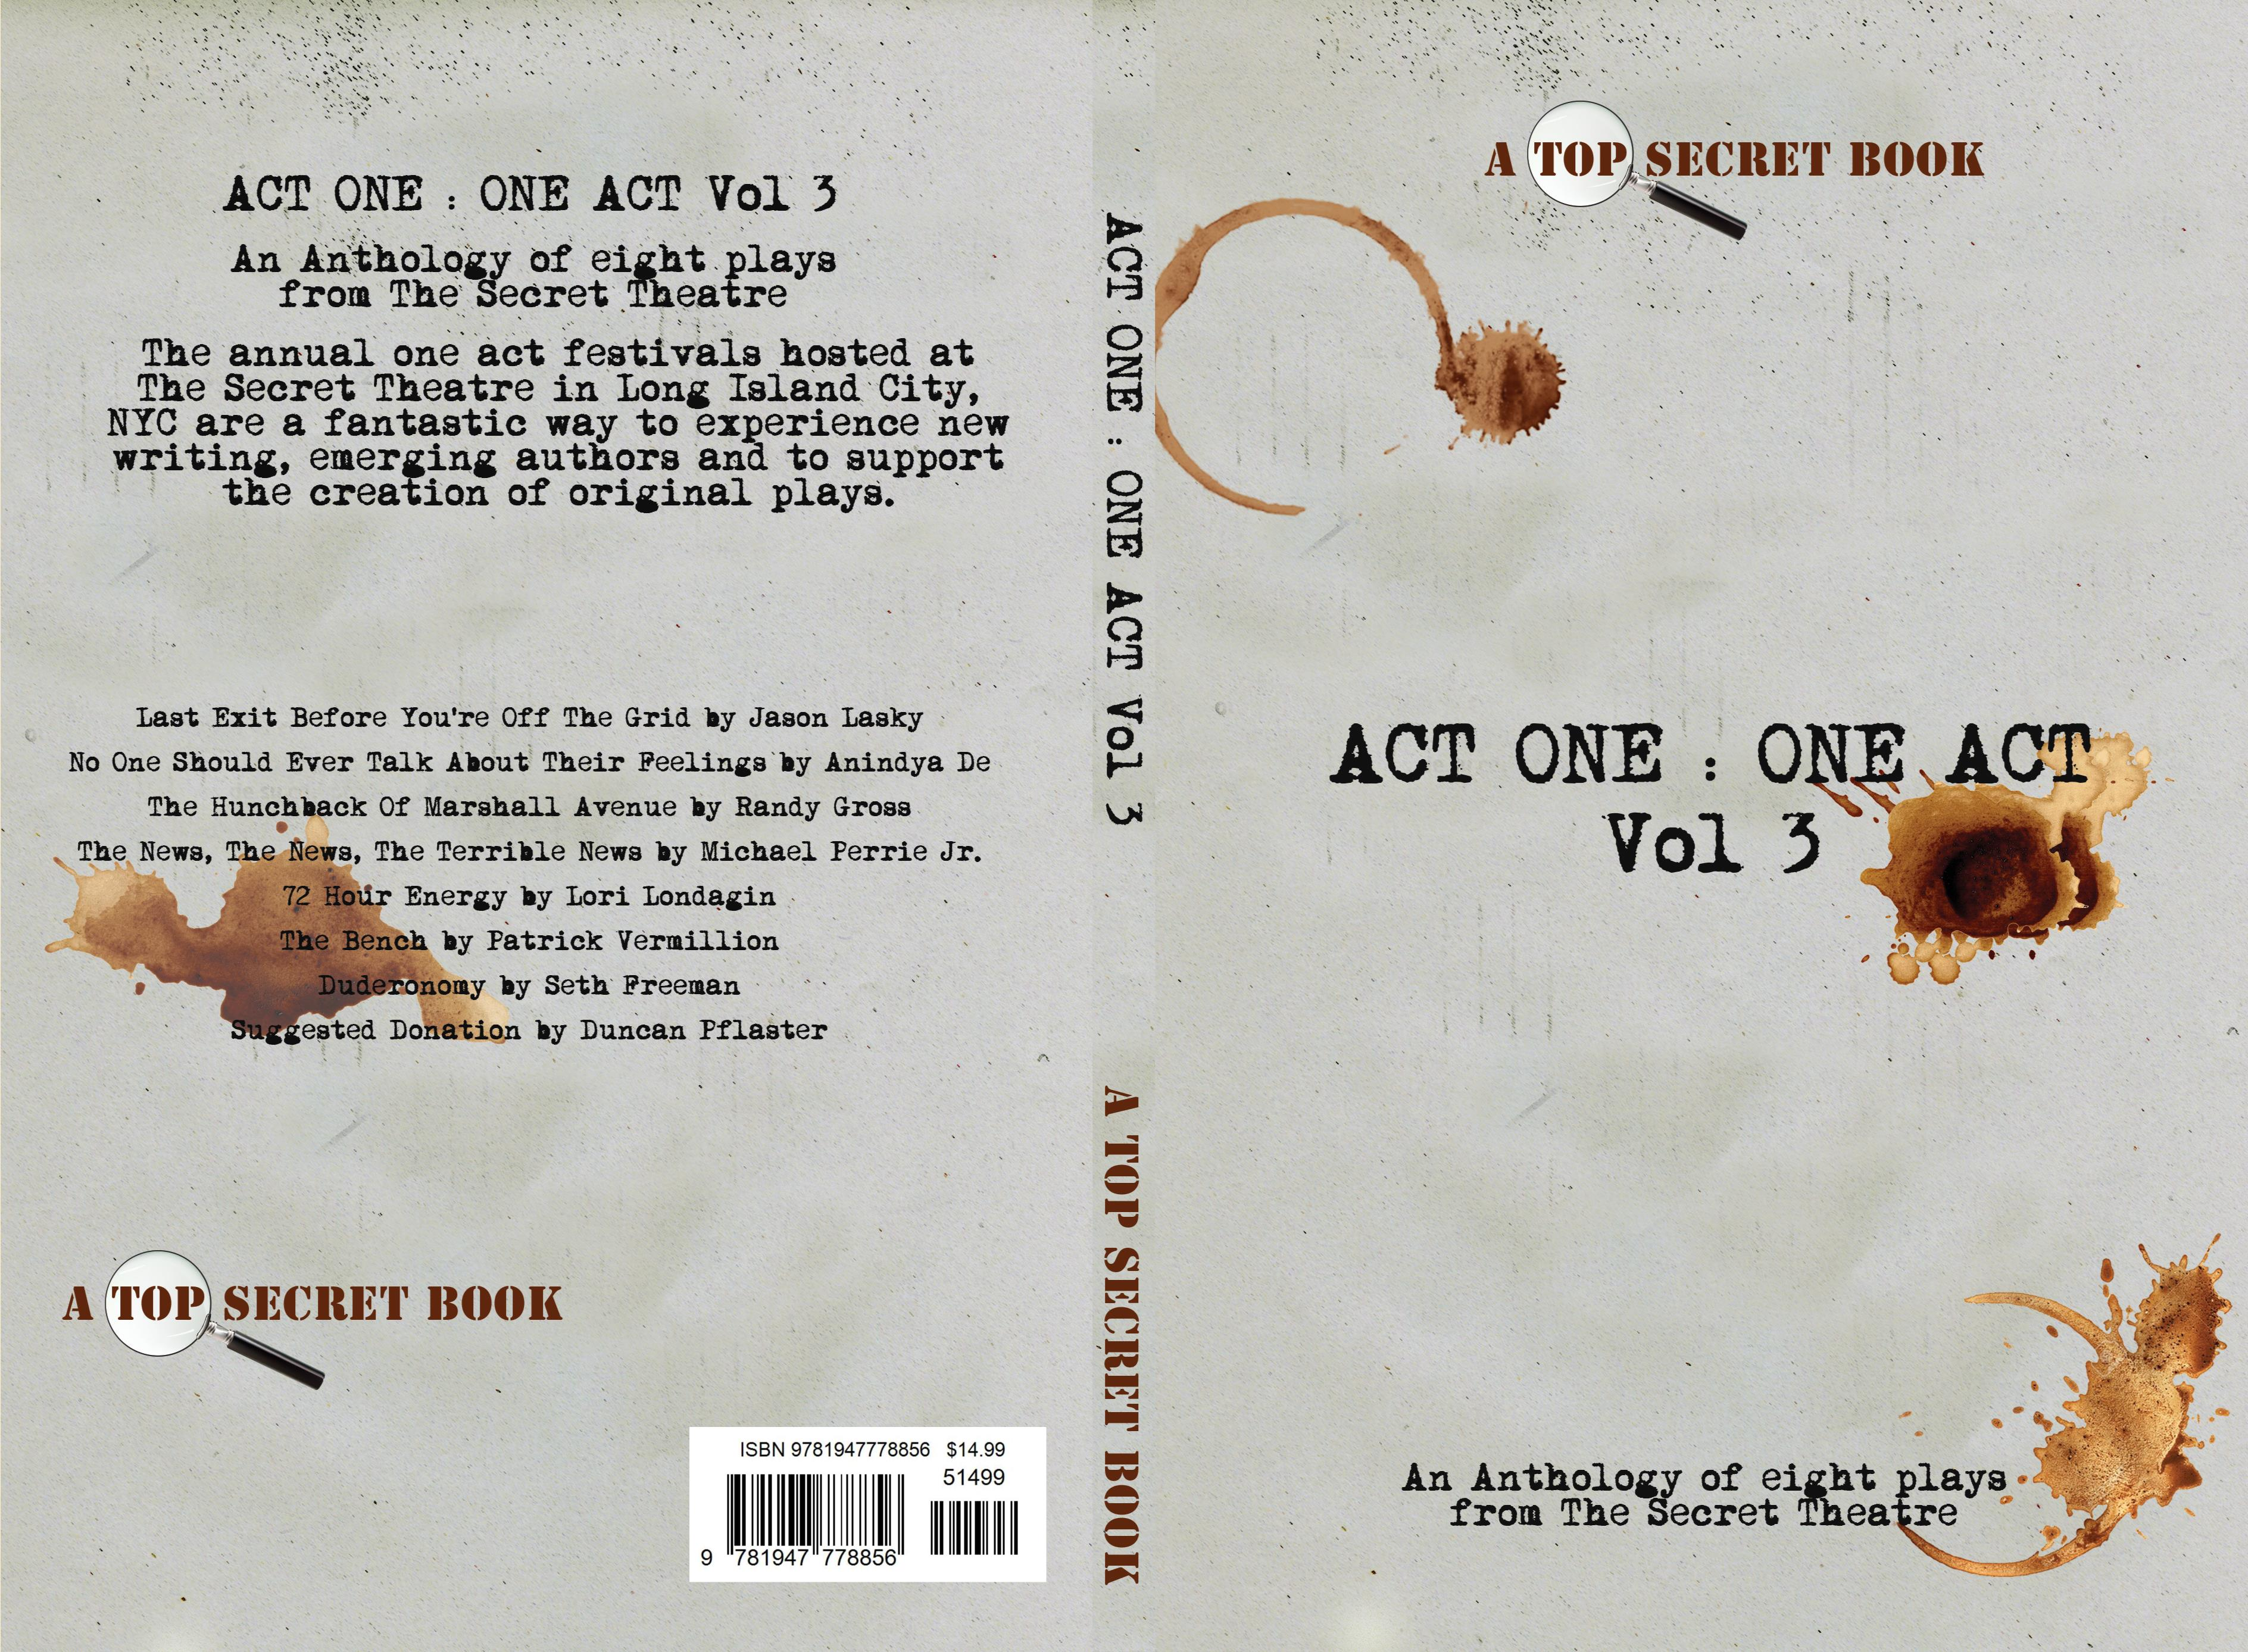 Act One : One Act Vol 3 cover image